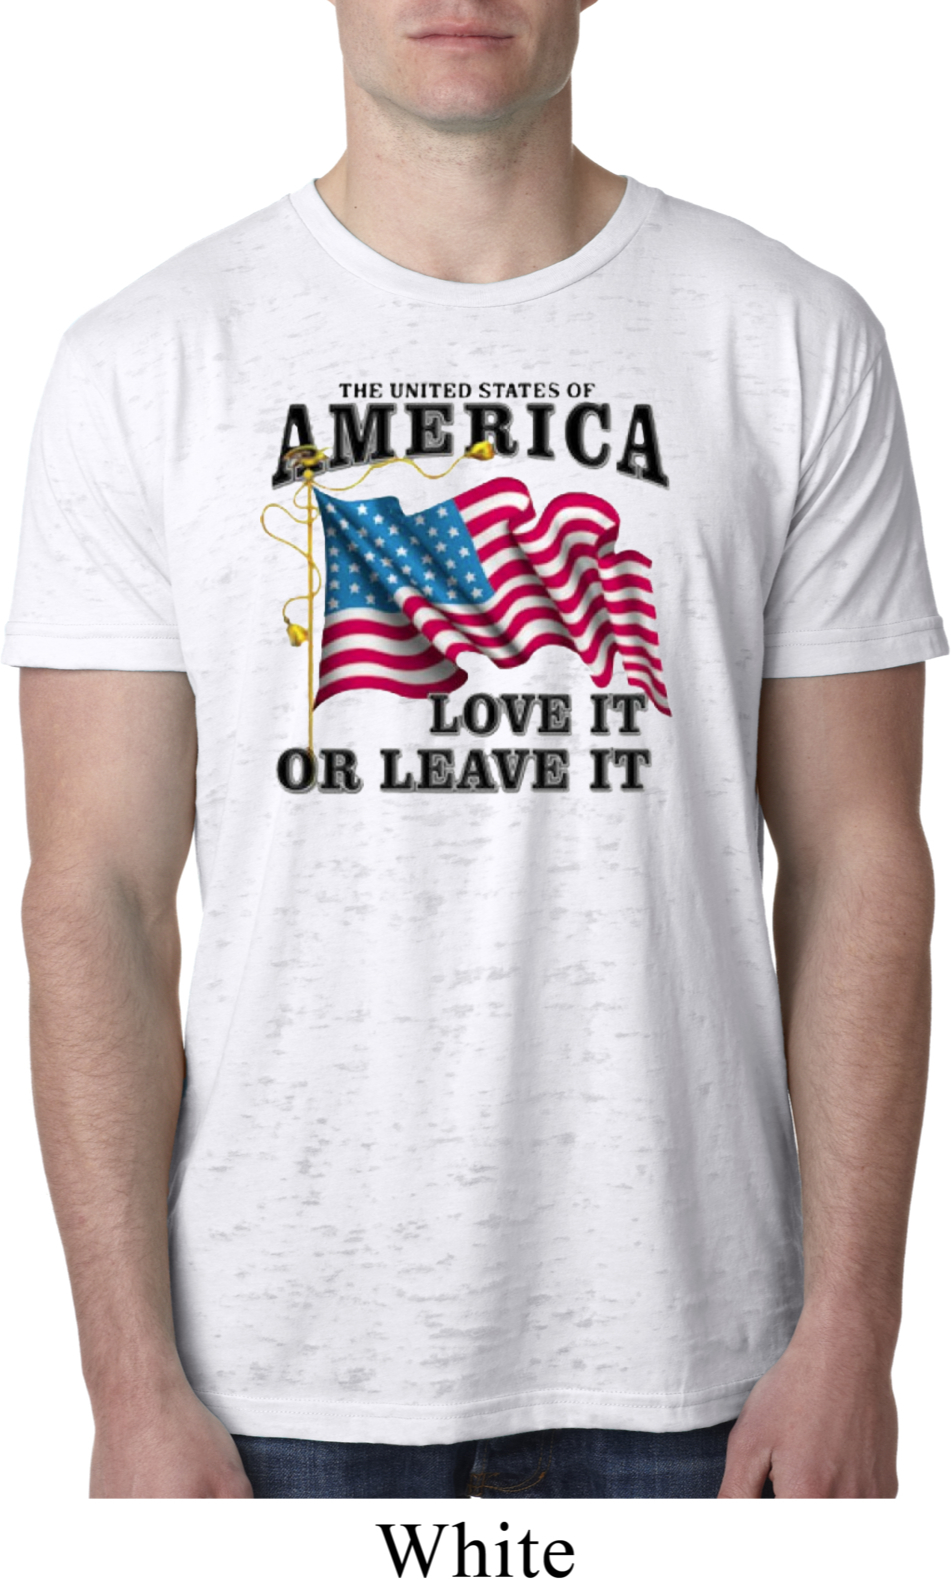 86c9f84552d America Love It or Leave It White Mens Burnout Shirt - America Love It or Leave  It Mens Shirts